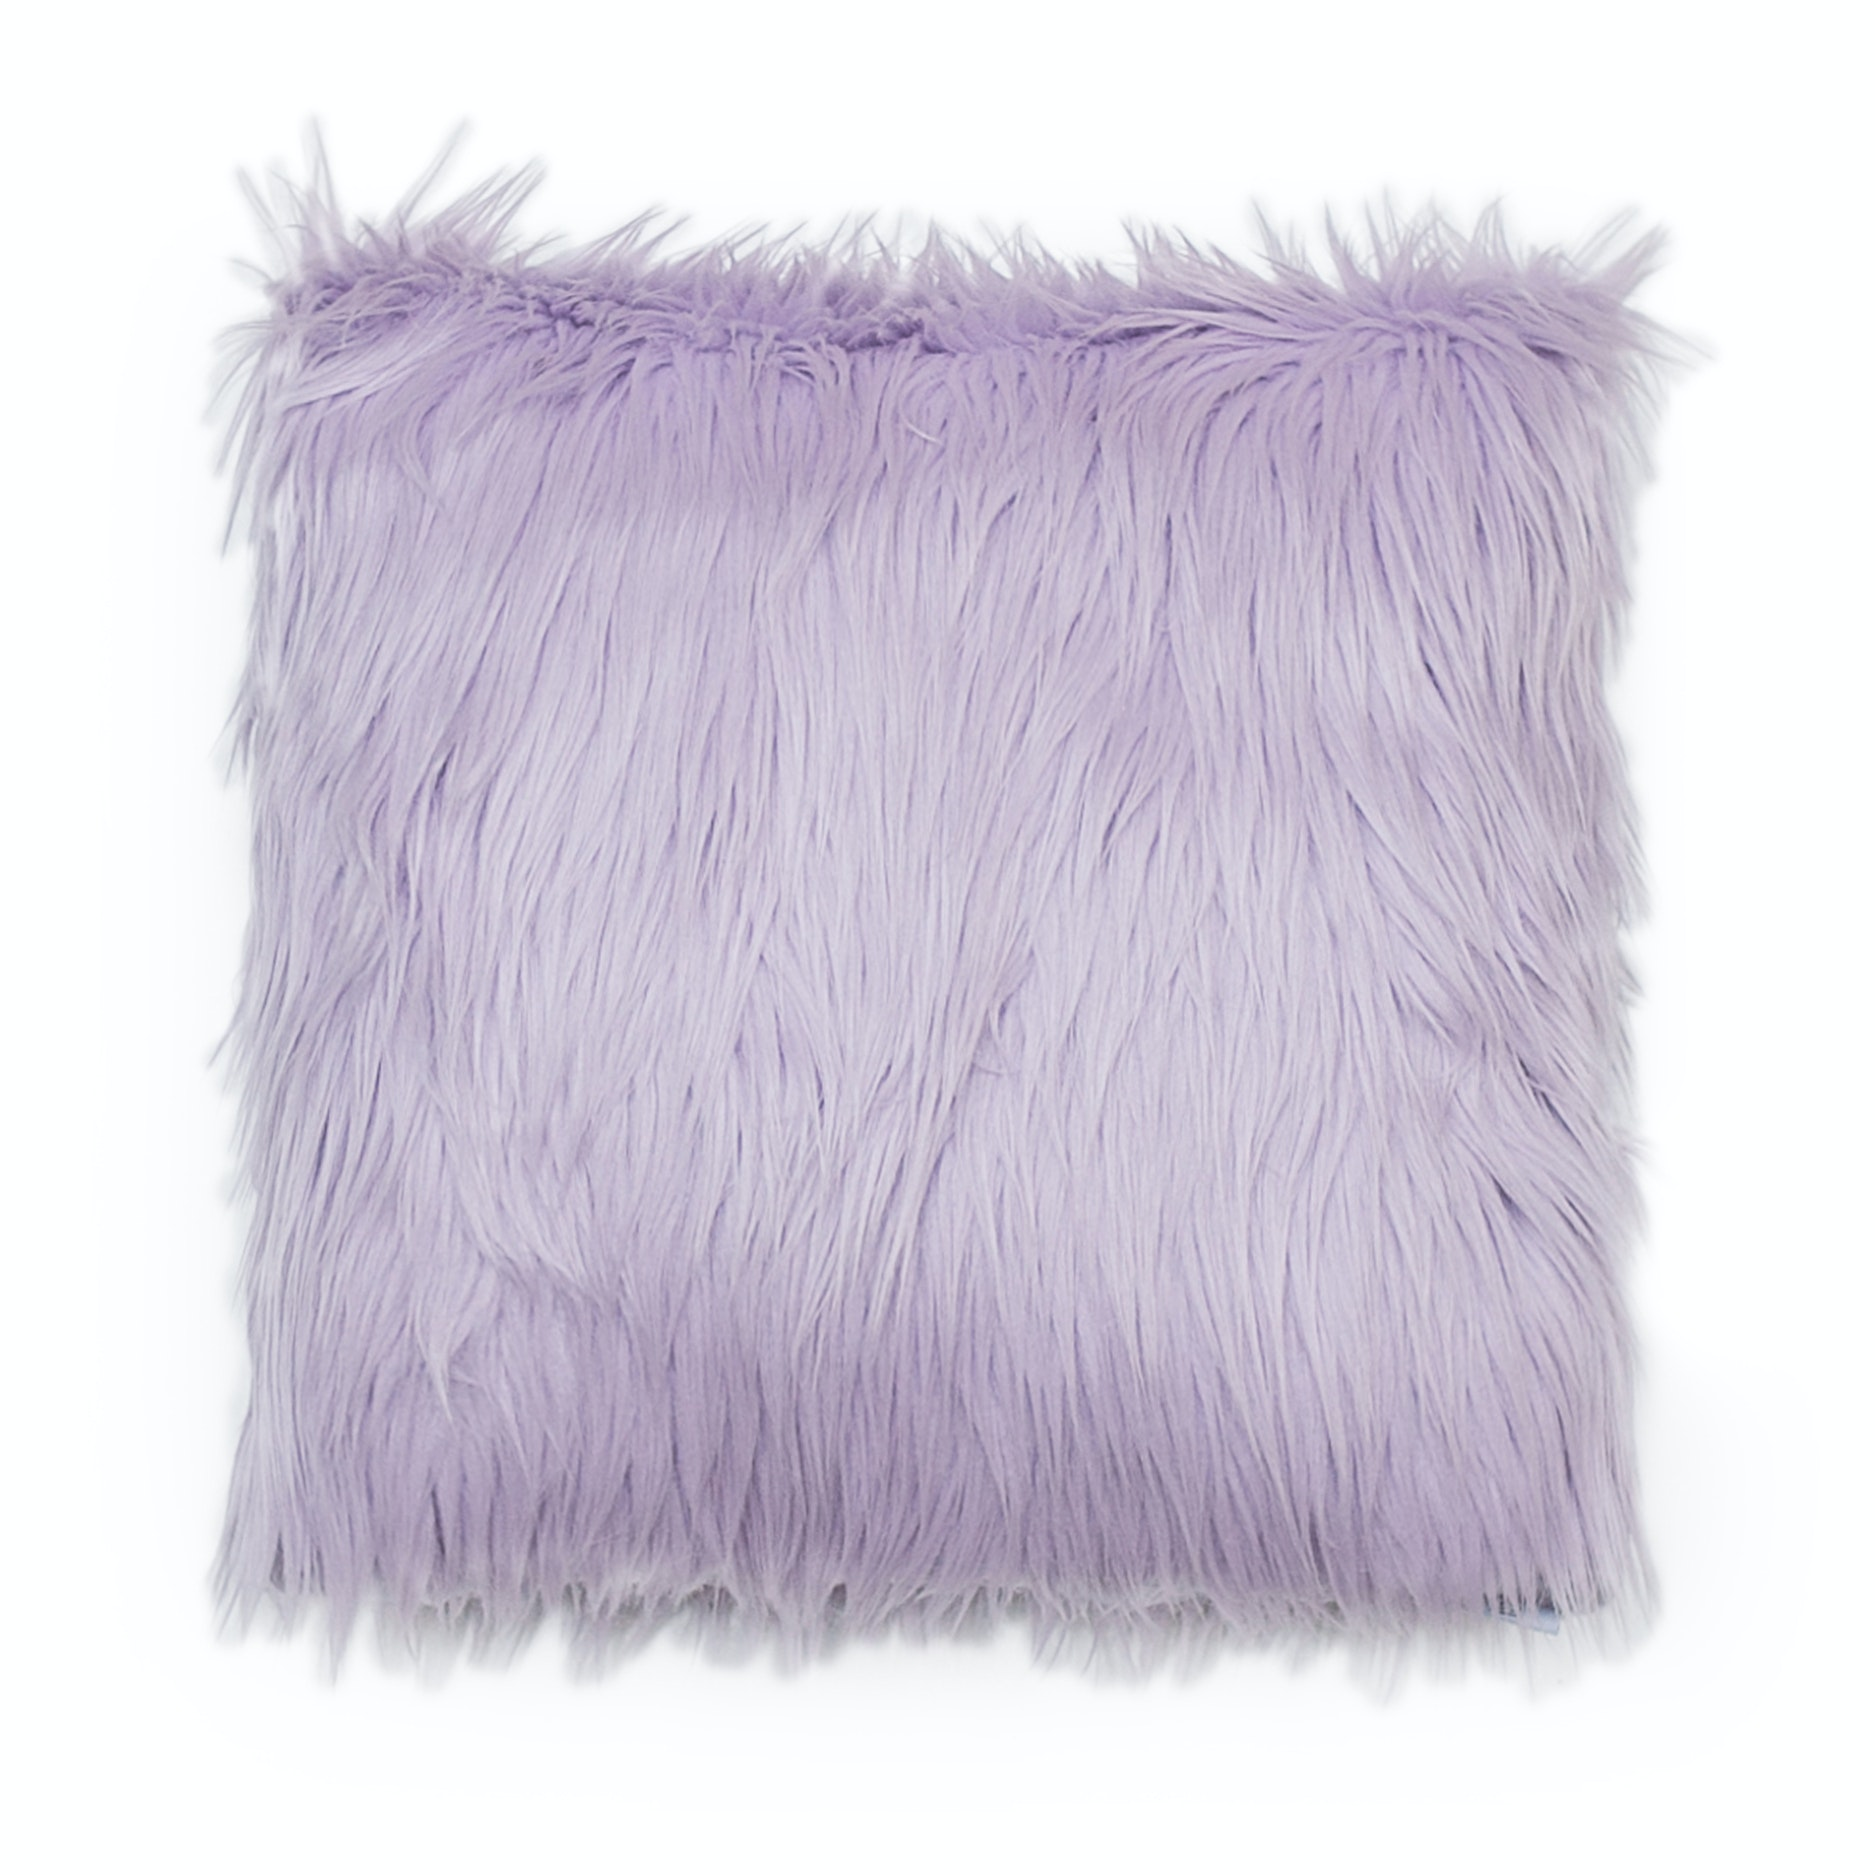 Glerry Home Decor Periwinkle Fur Cushion 40x40cm